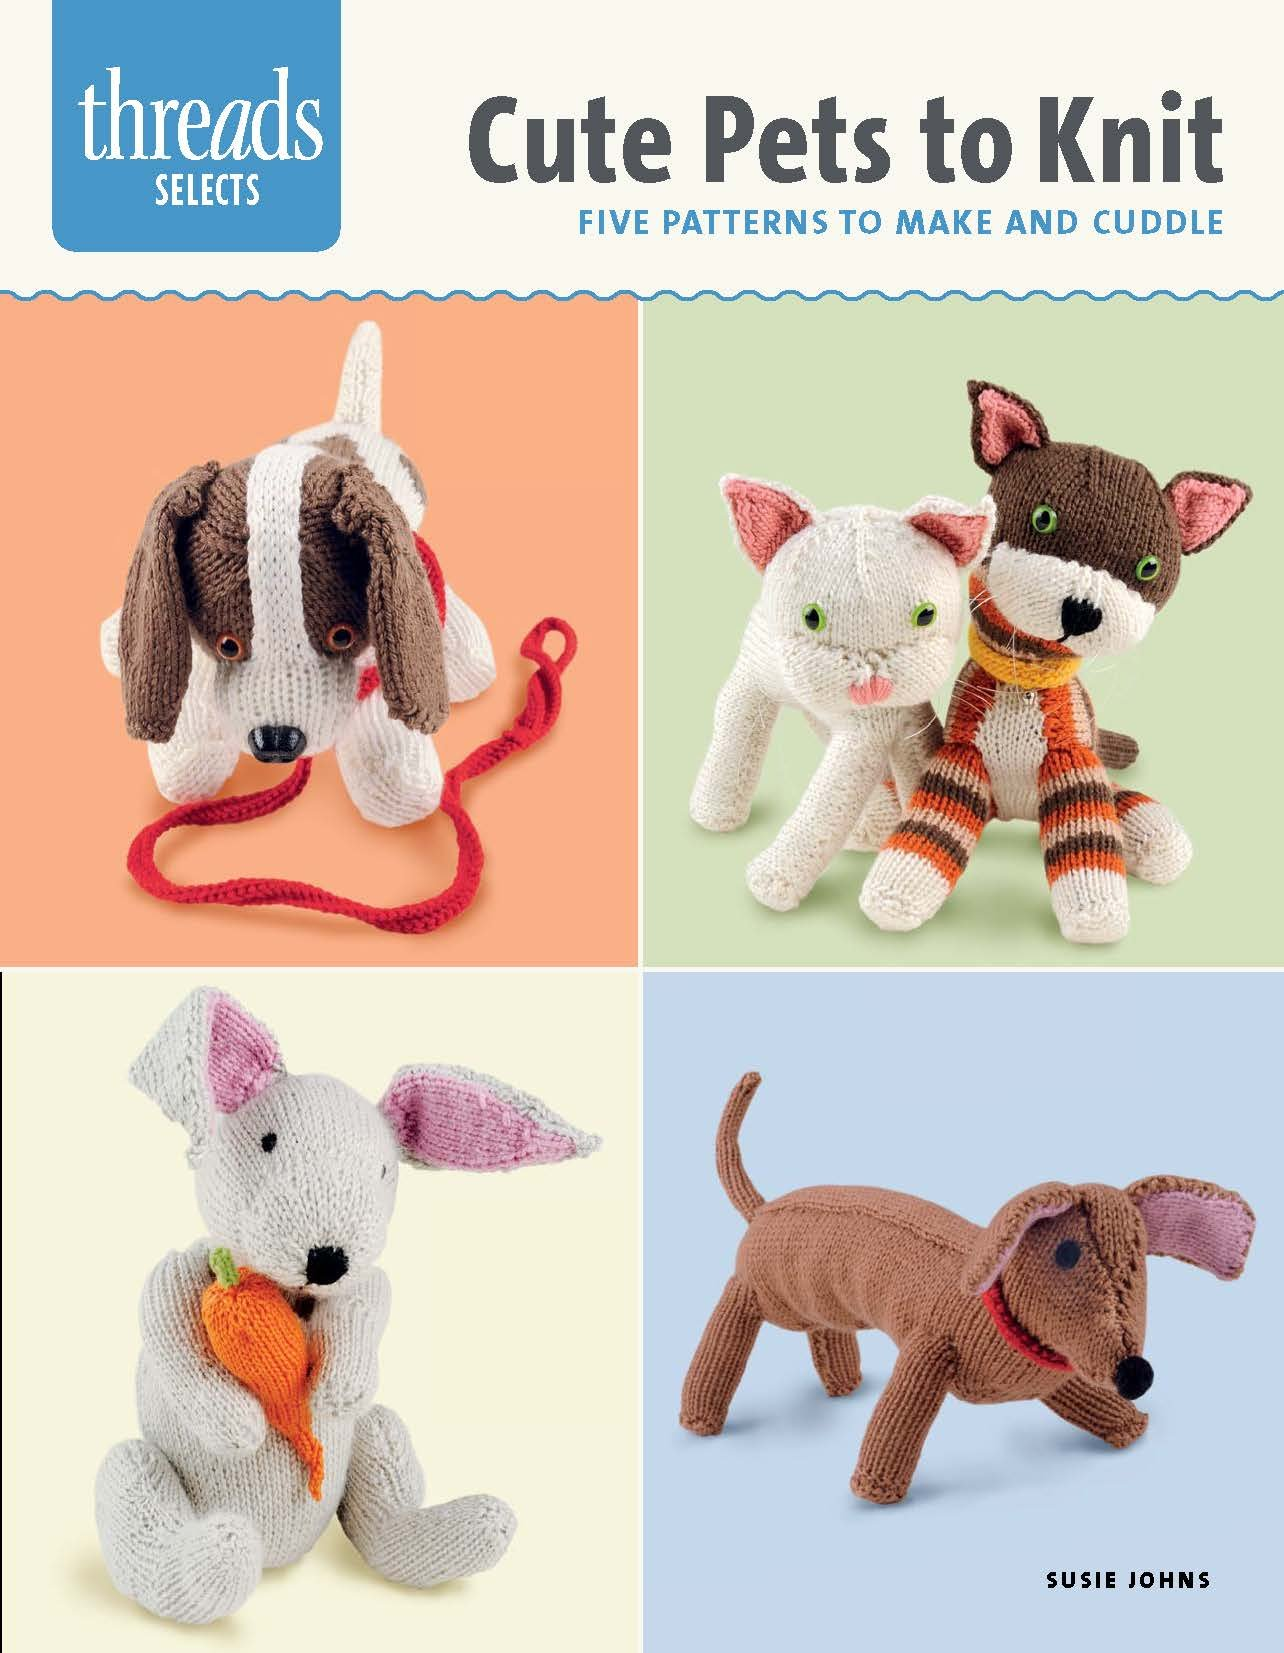 Cute Pets to Knit: Five Patterns to Make and Cuddle (Threads Selects)